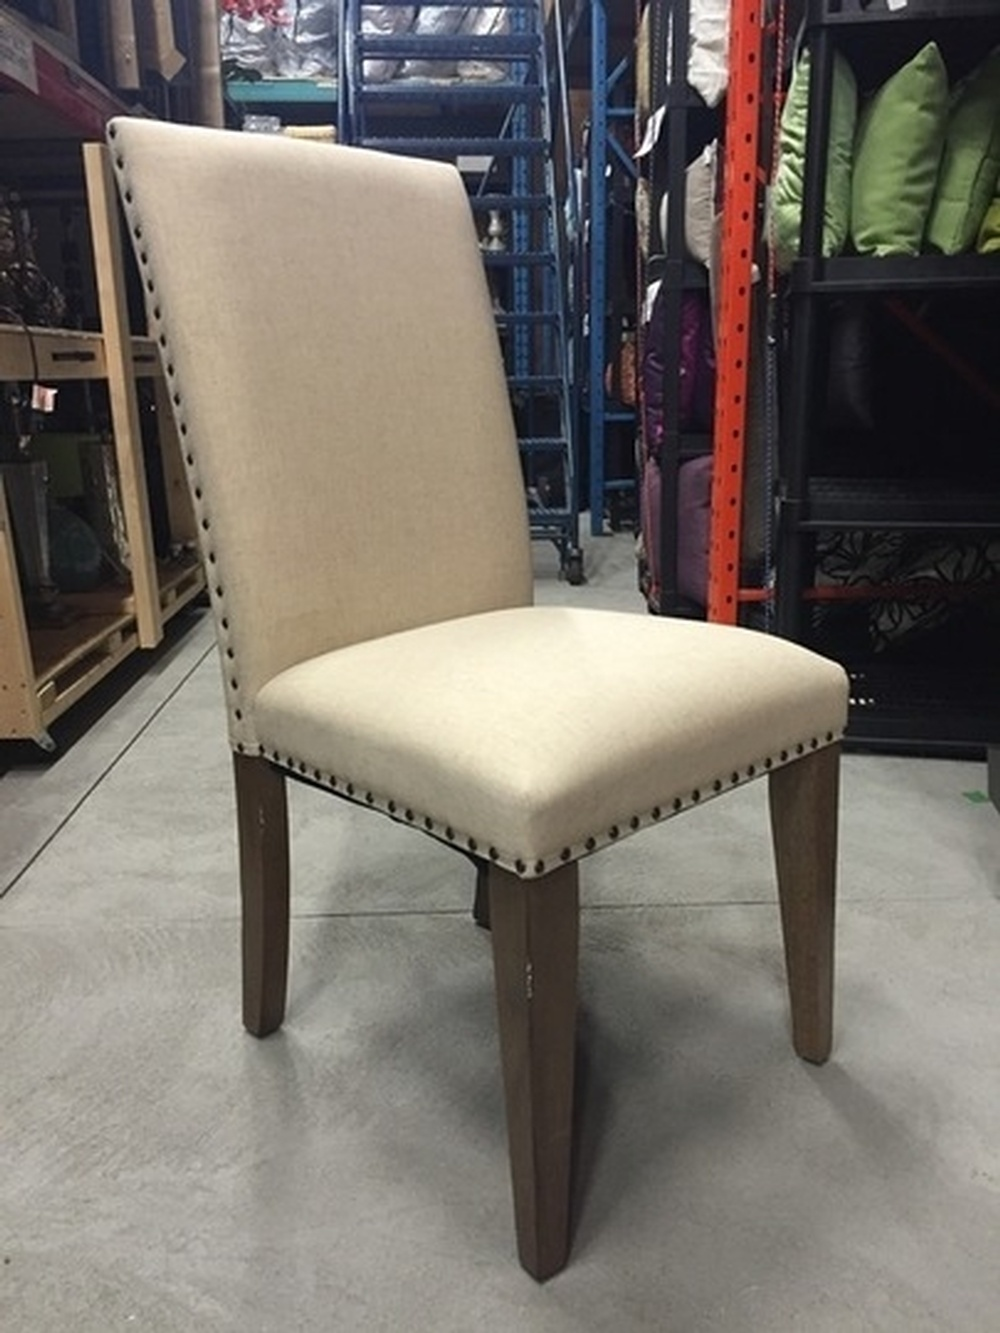 Studded Dining Chairs Home Designs Staging Group Inc Products Chairs Cream